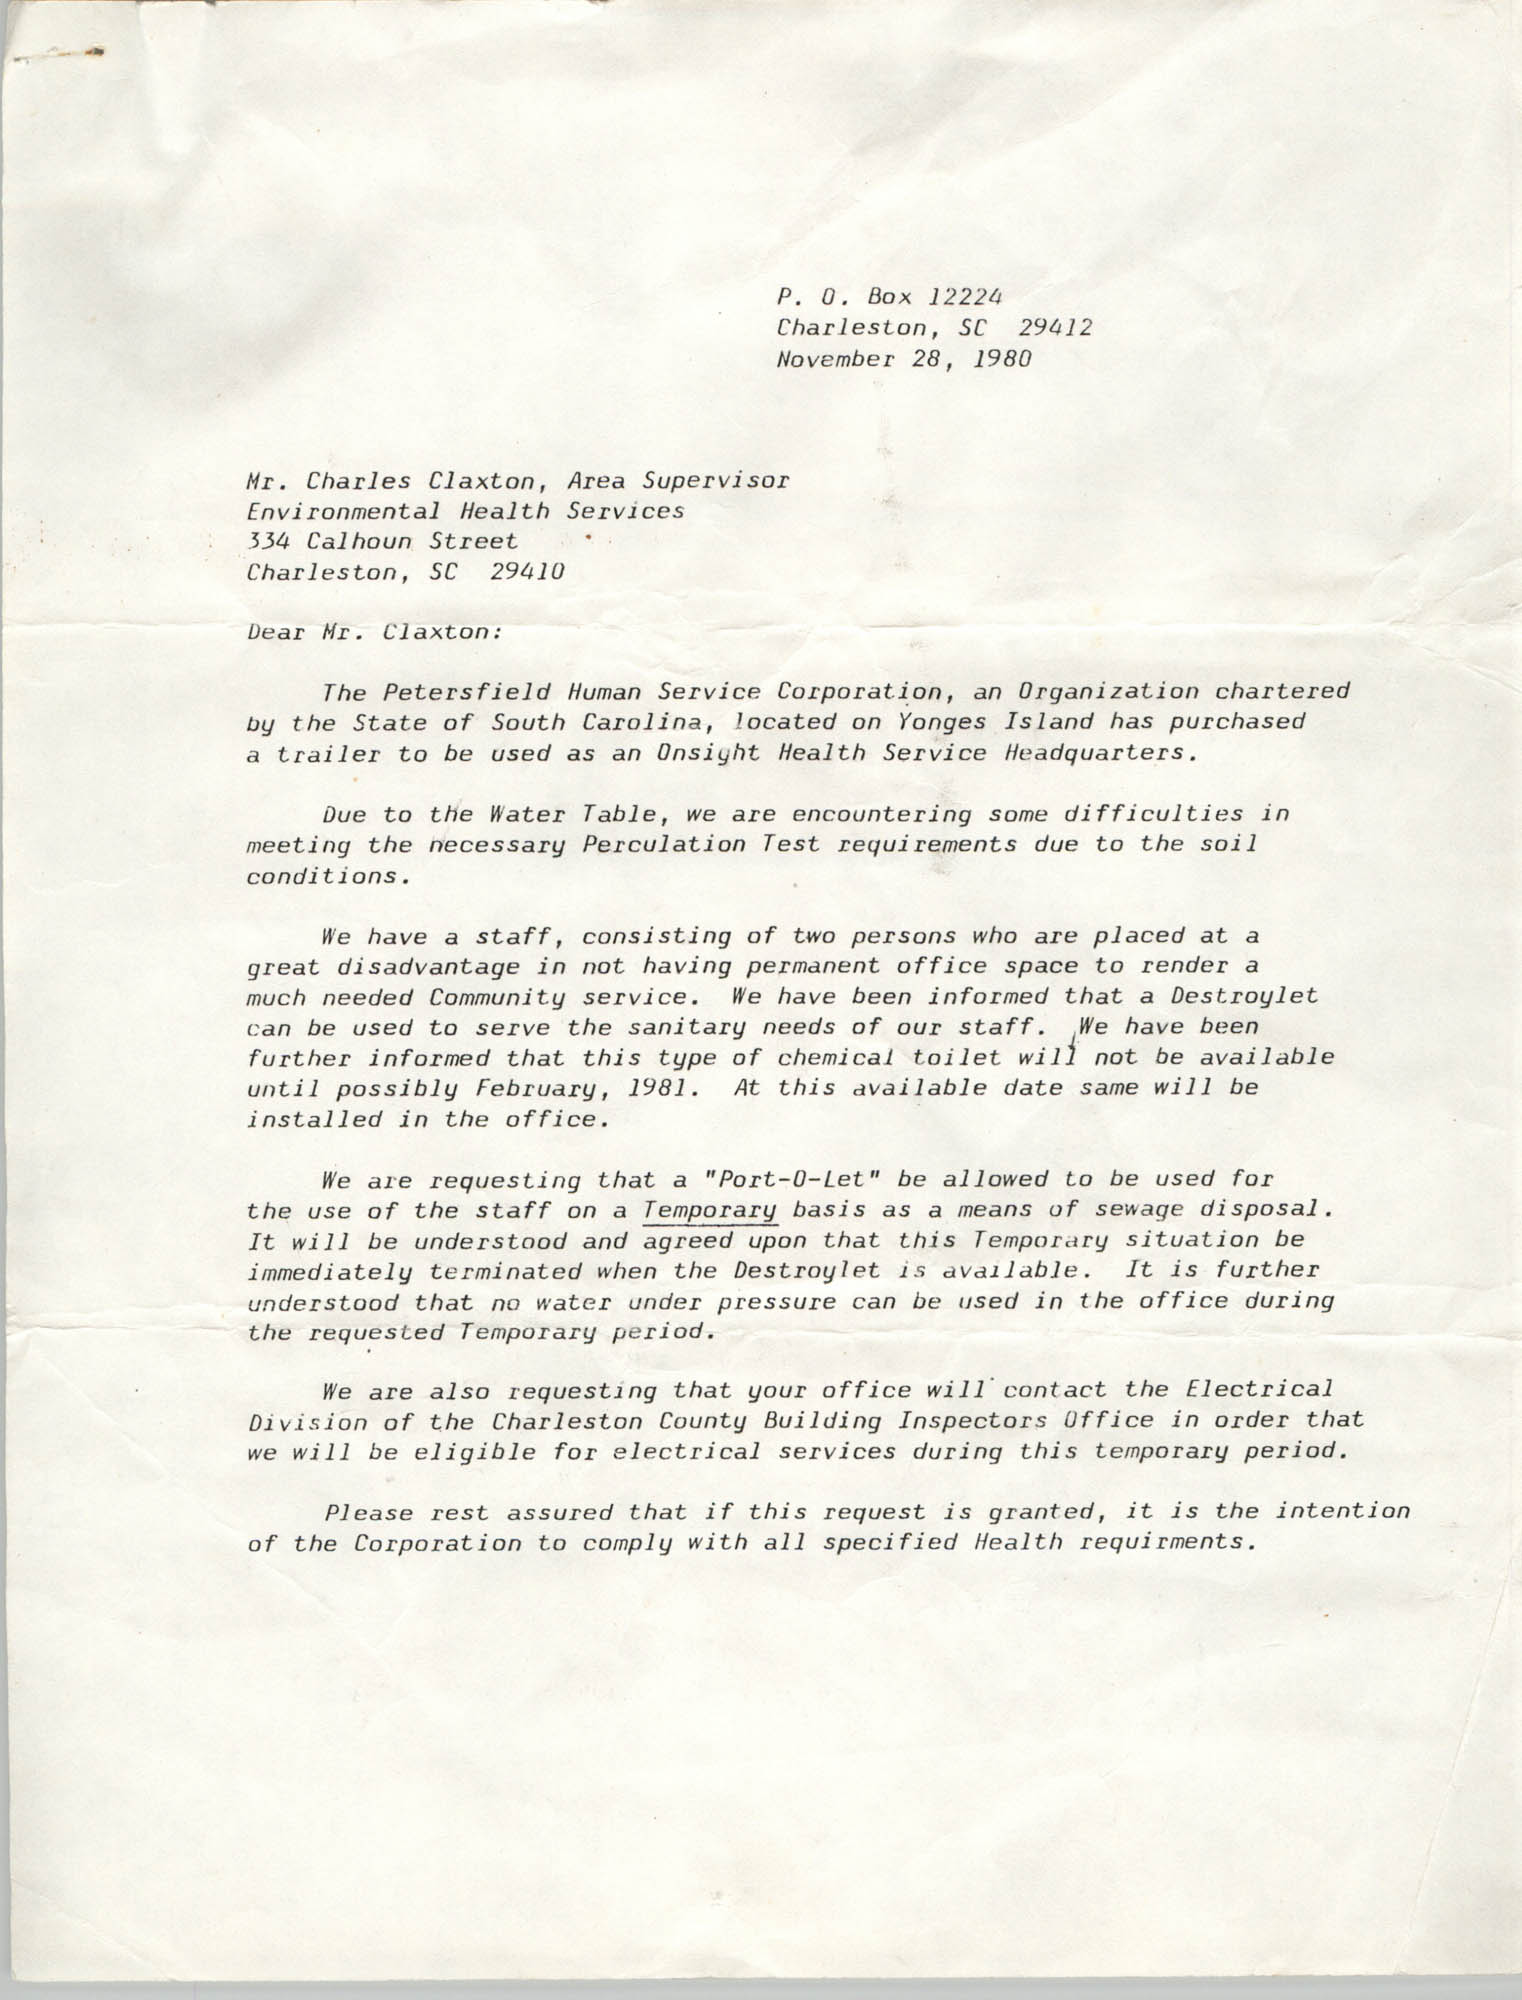 Letter from J. Arthur Brown to Charles Claxton, November 28, 1980